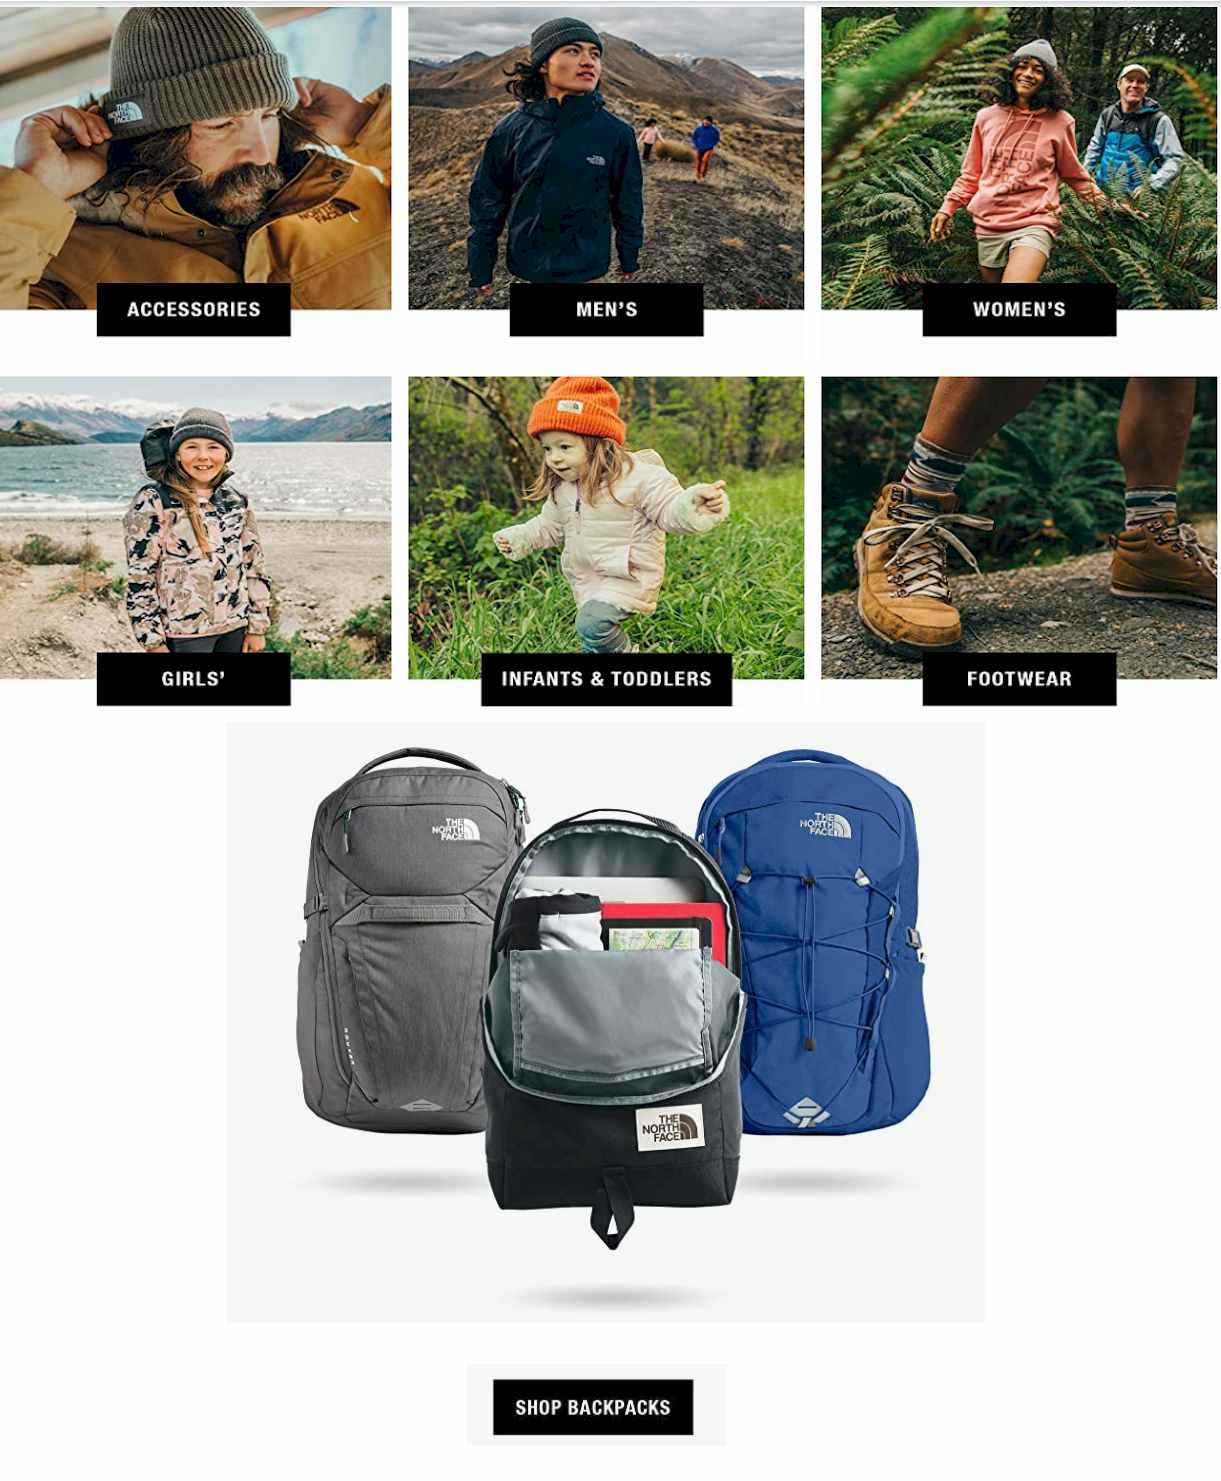 North Face Store on Amazon